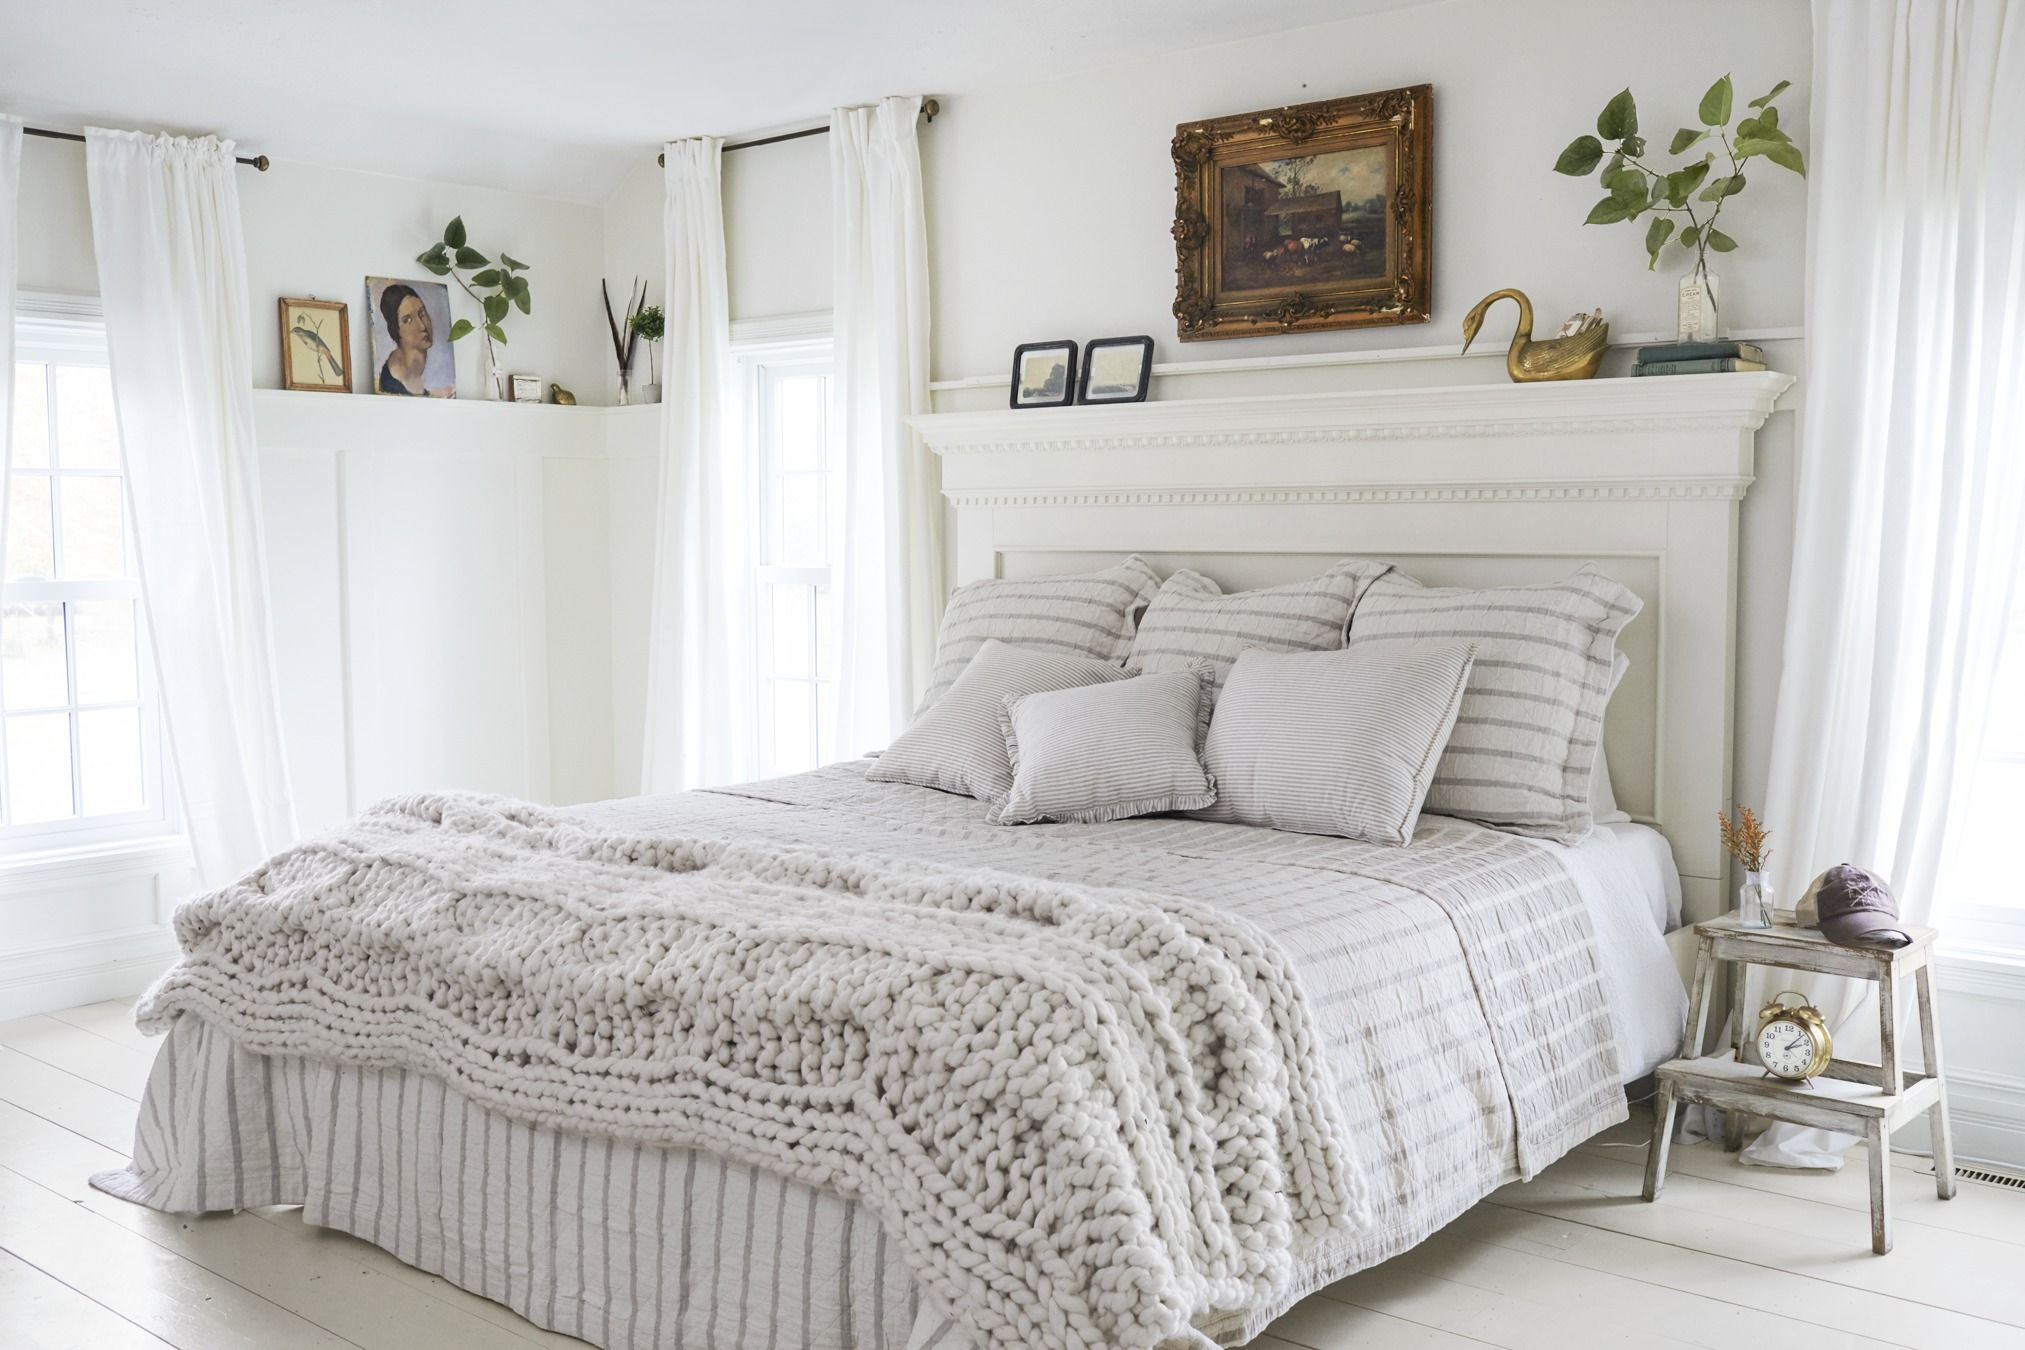 12 Best White Bedroom Ideas - How to Decorate a White Bedroom